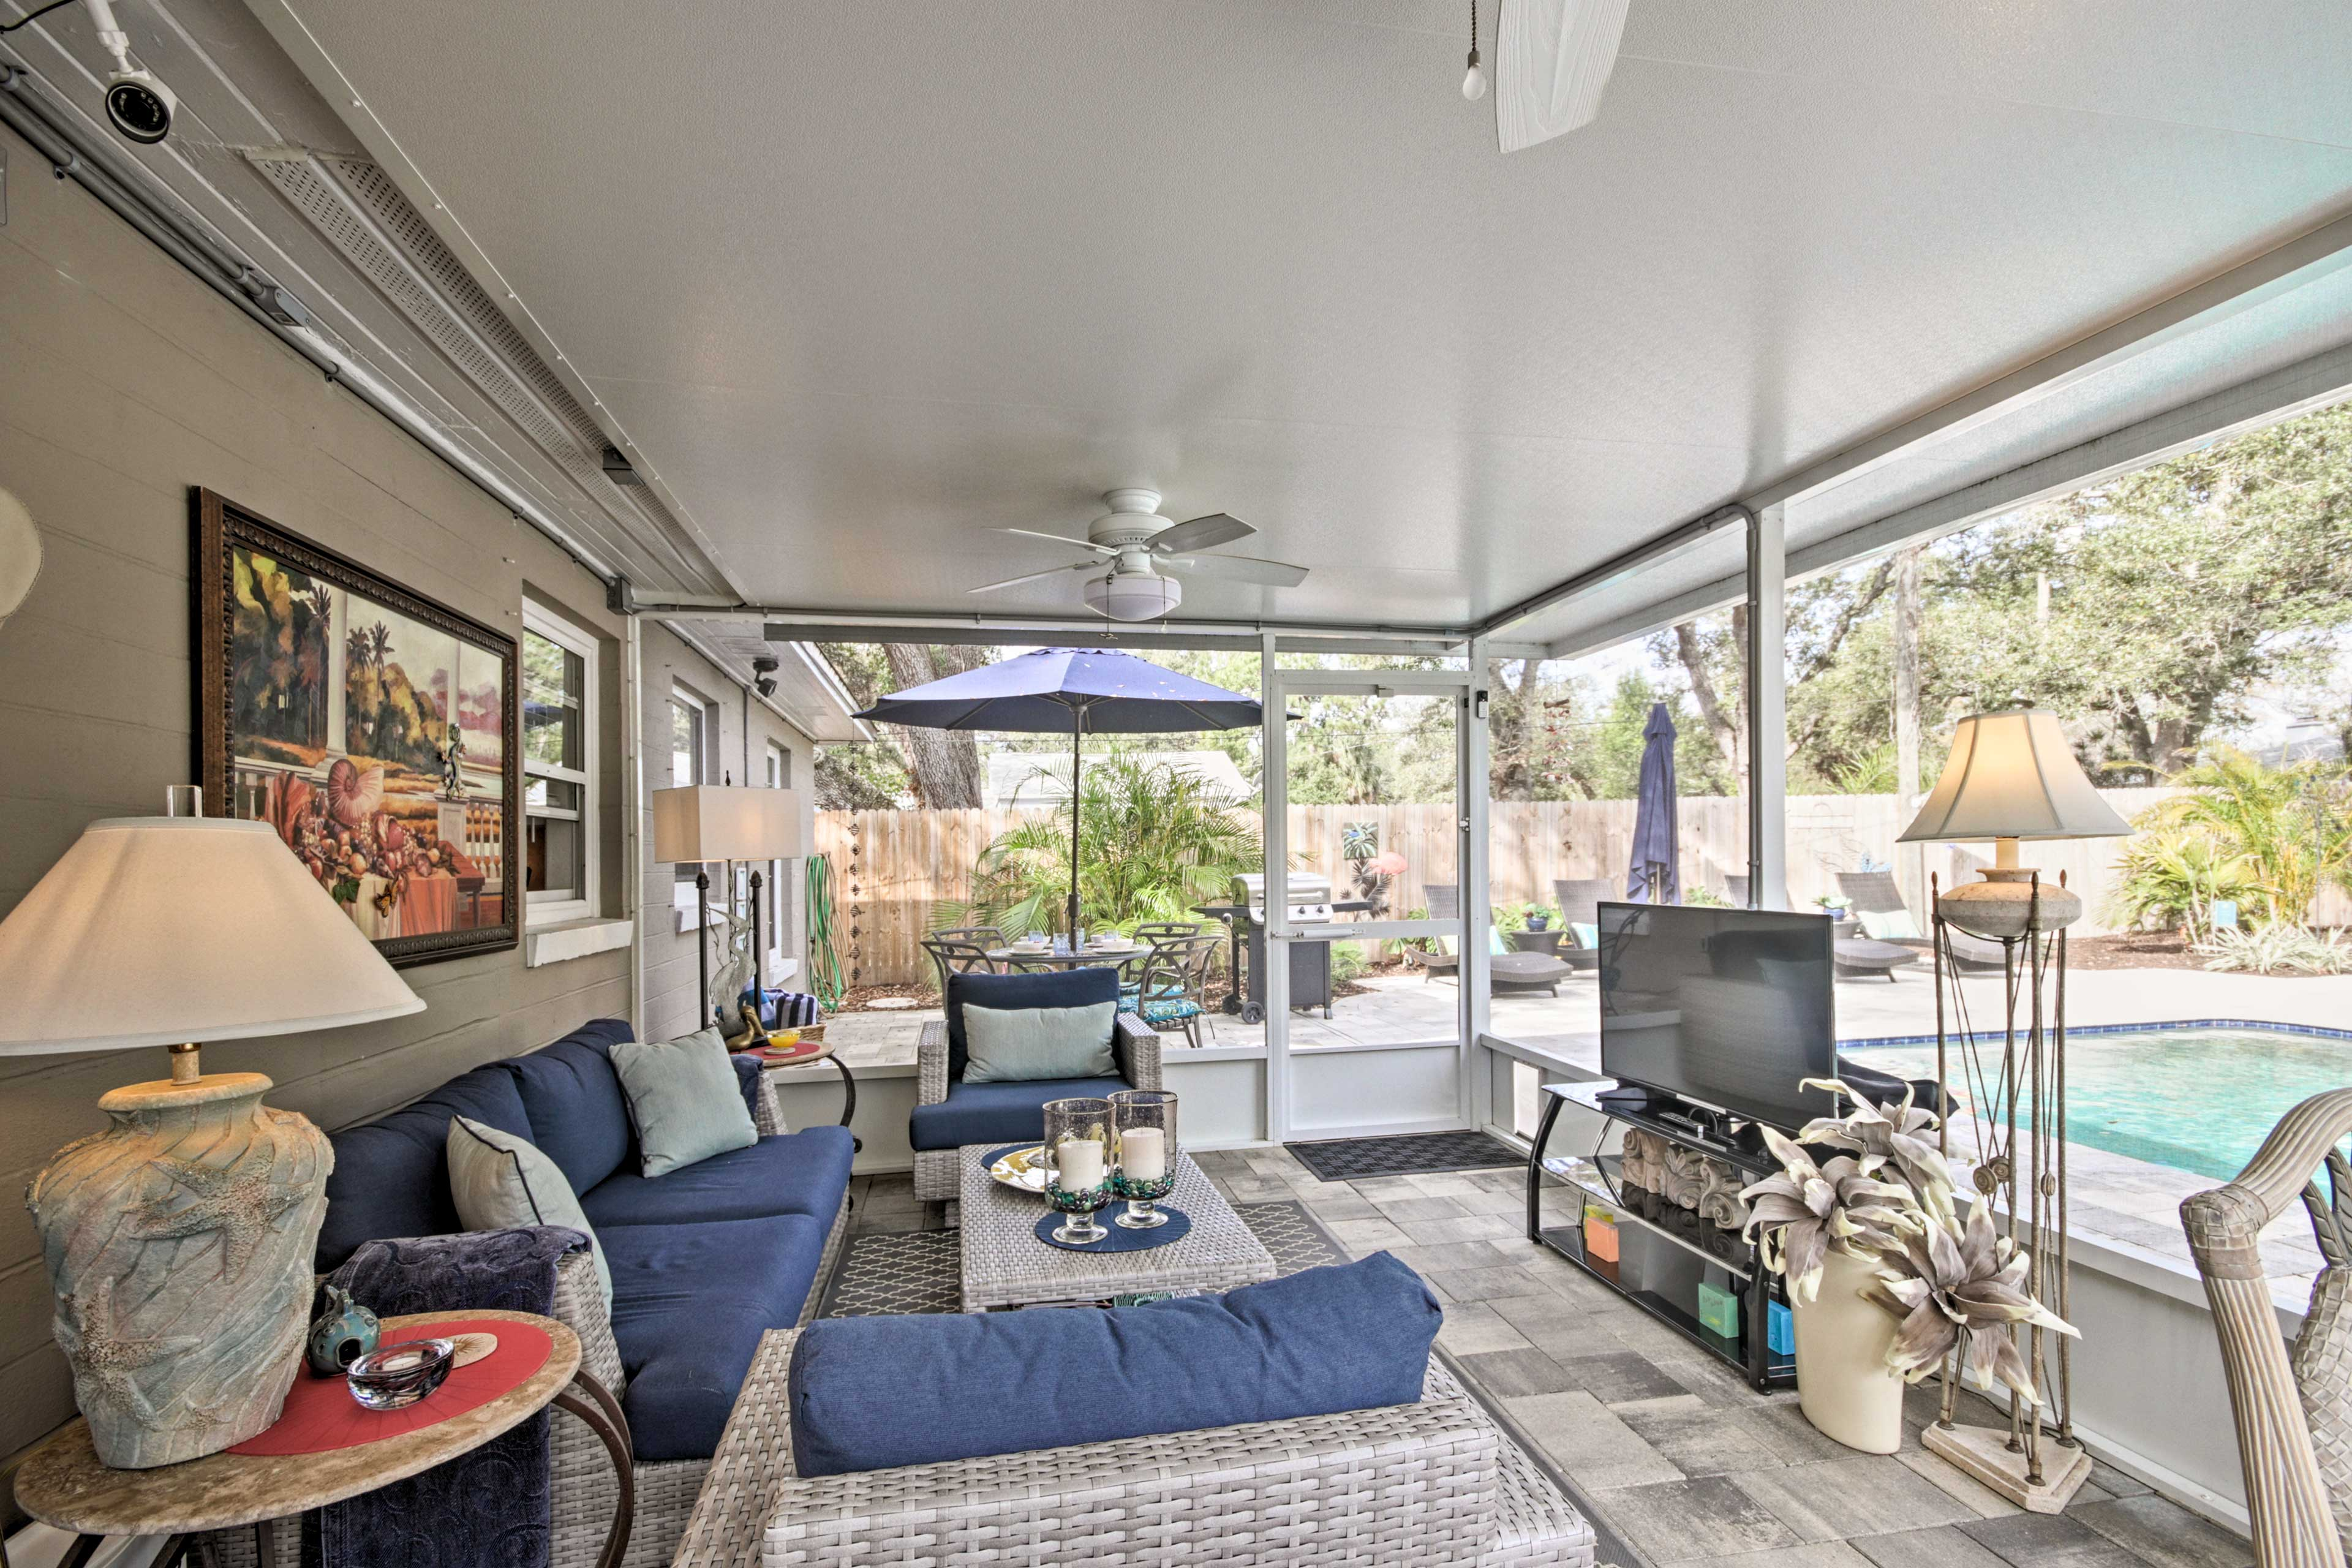 Enjoy luxurious amenities including this tastefully furnished screened-in patio.